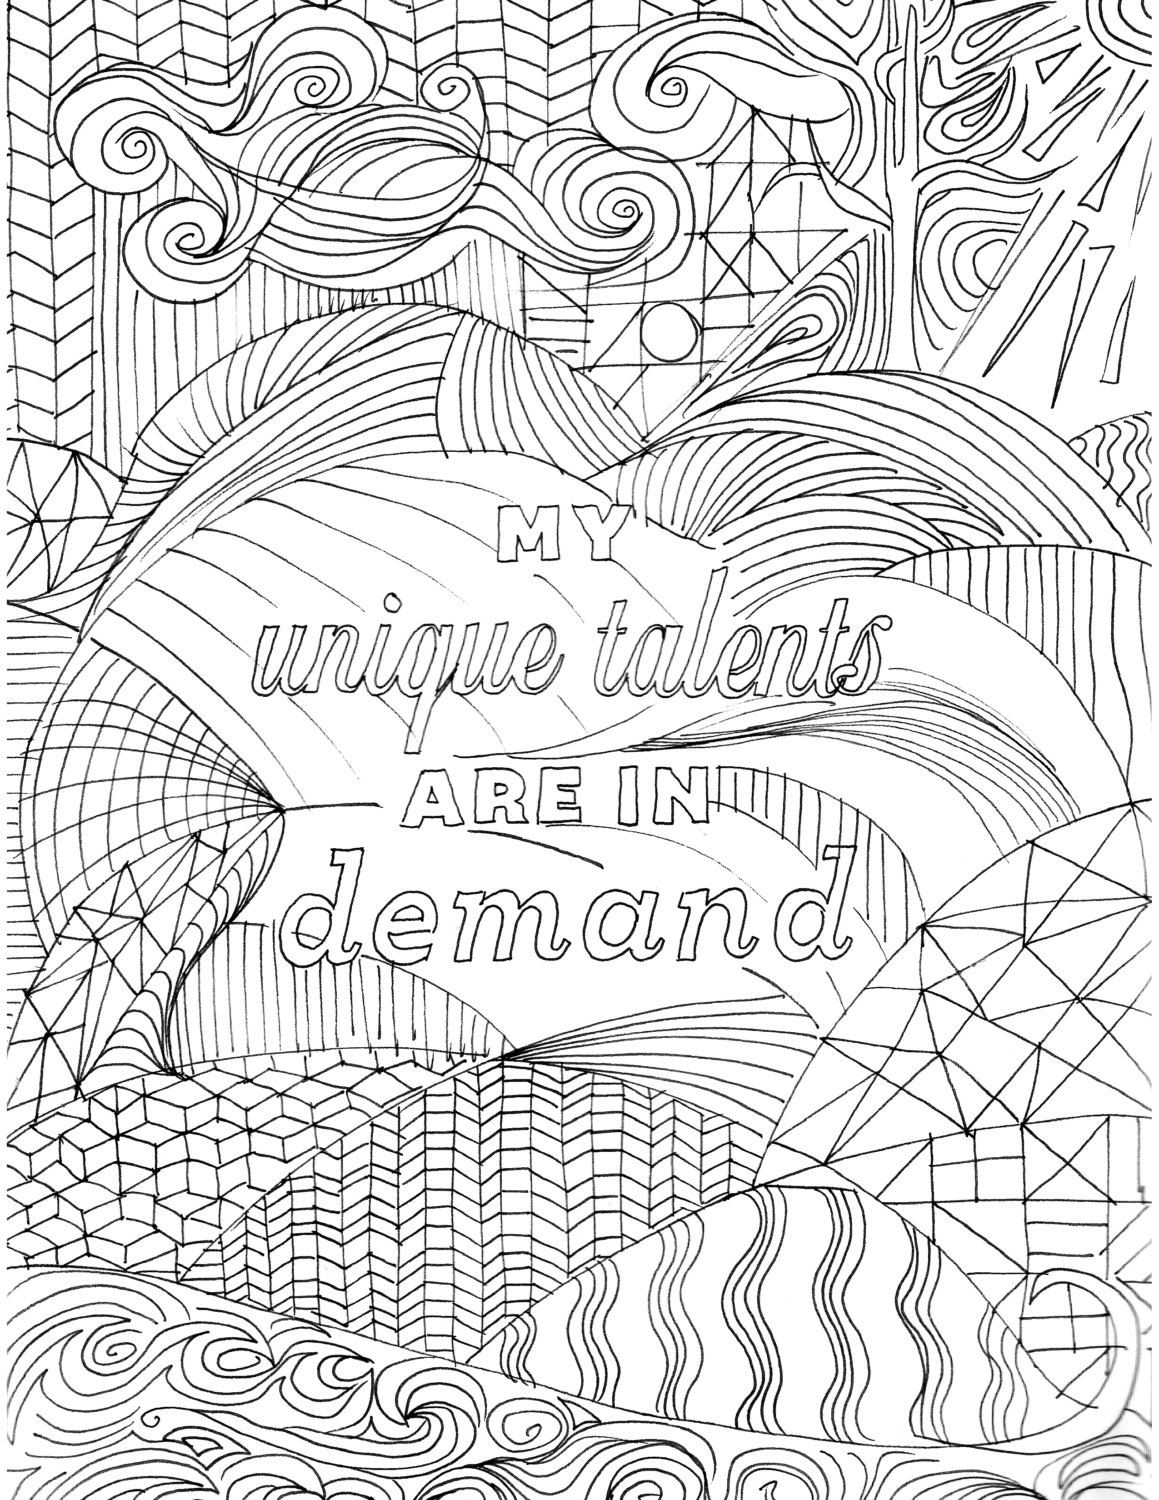 Positive Affirmation Coloring Page For Adults By Yogabender